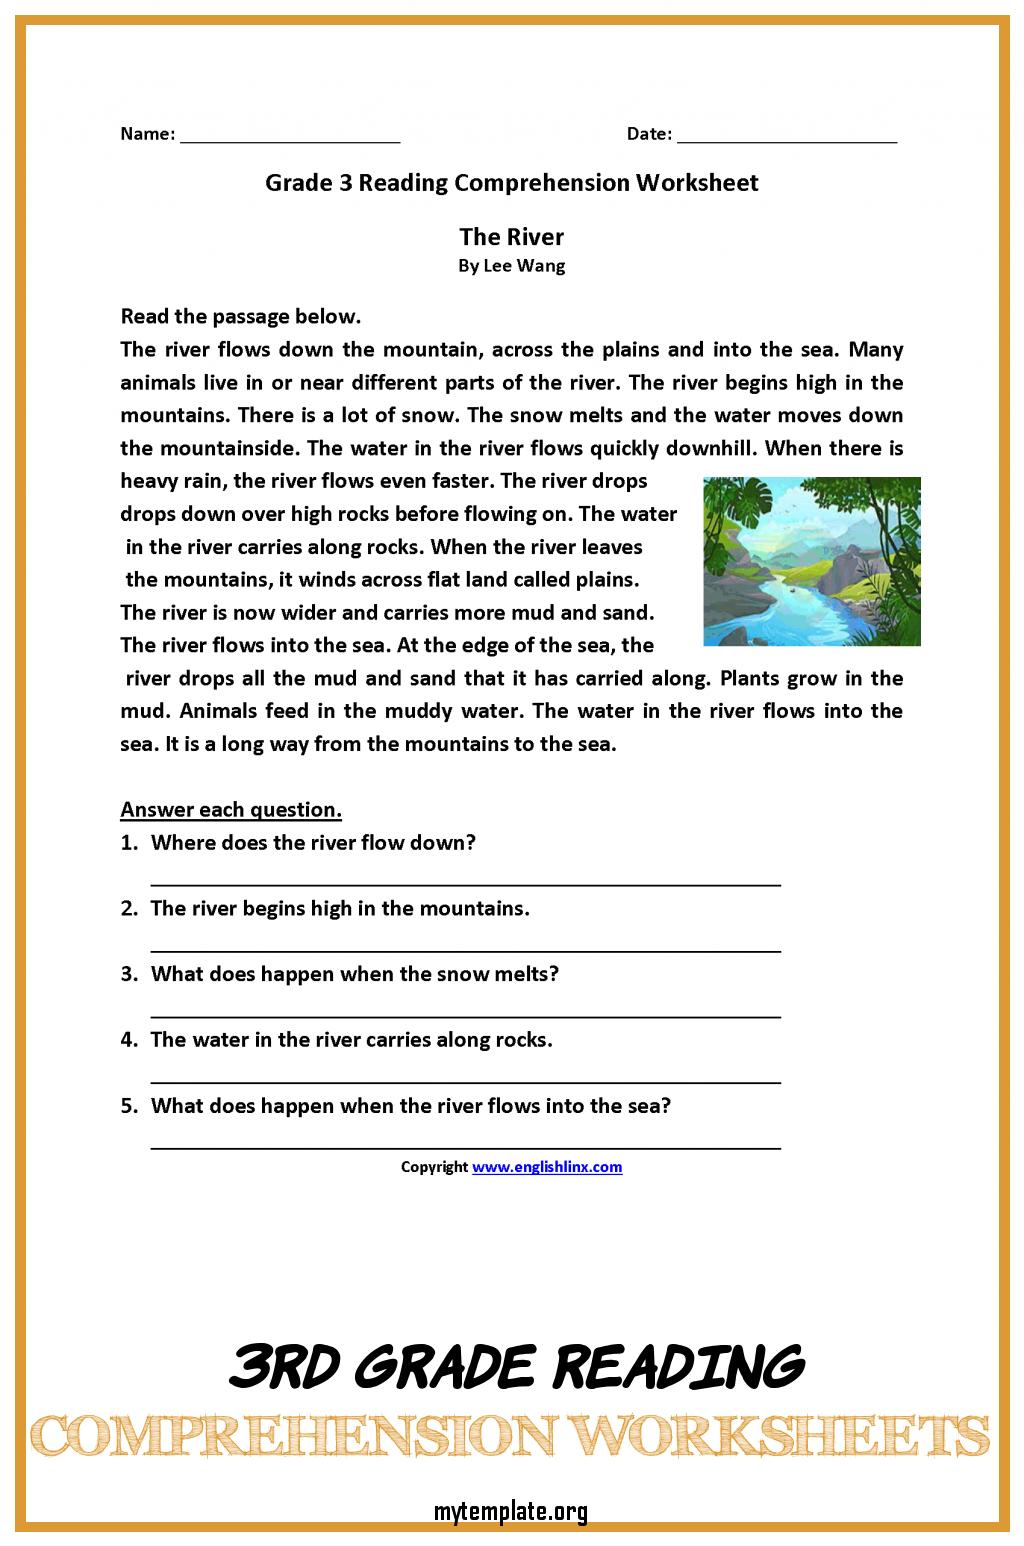 3rd Grade Reading Comprehension Worksheets Of Worksheet